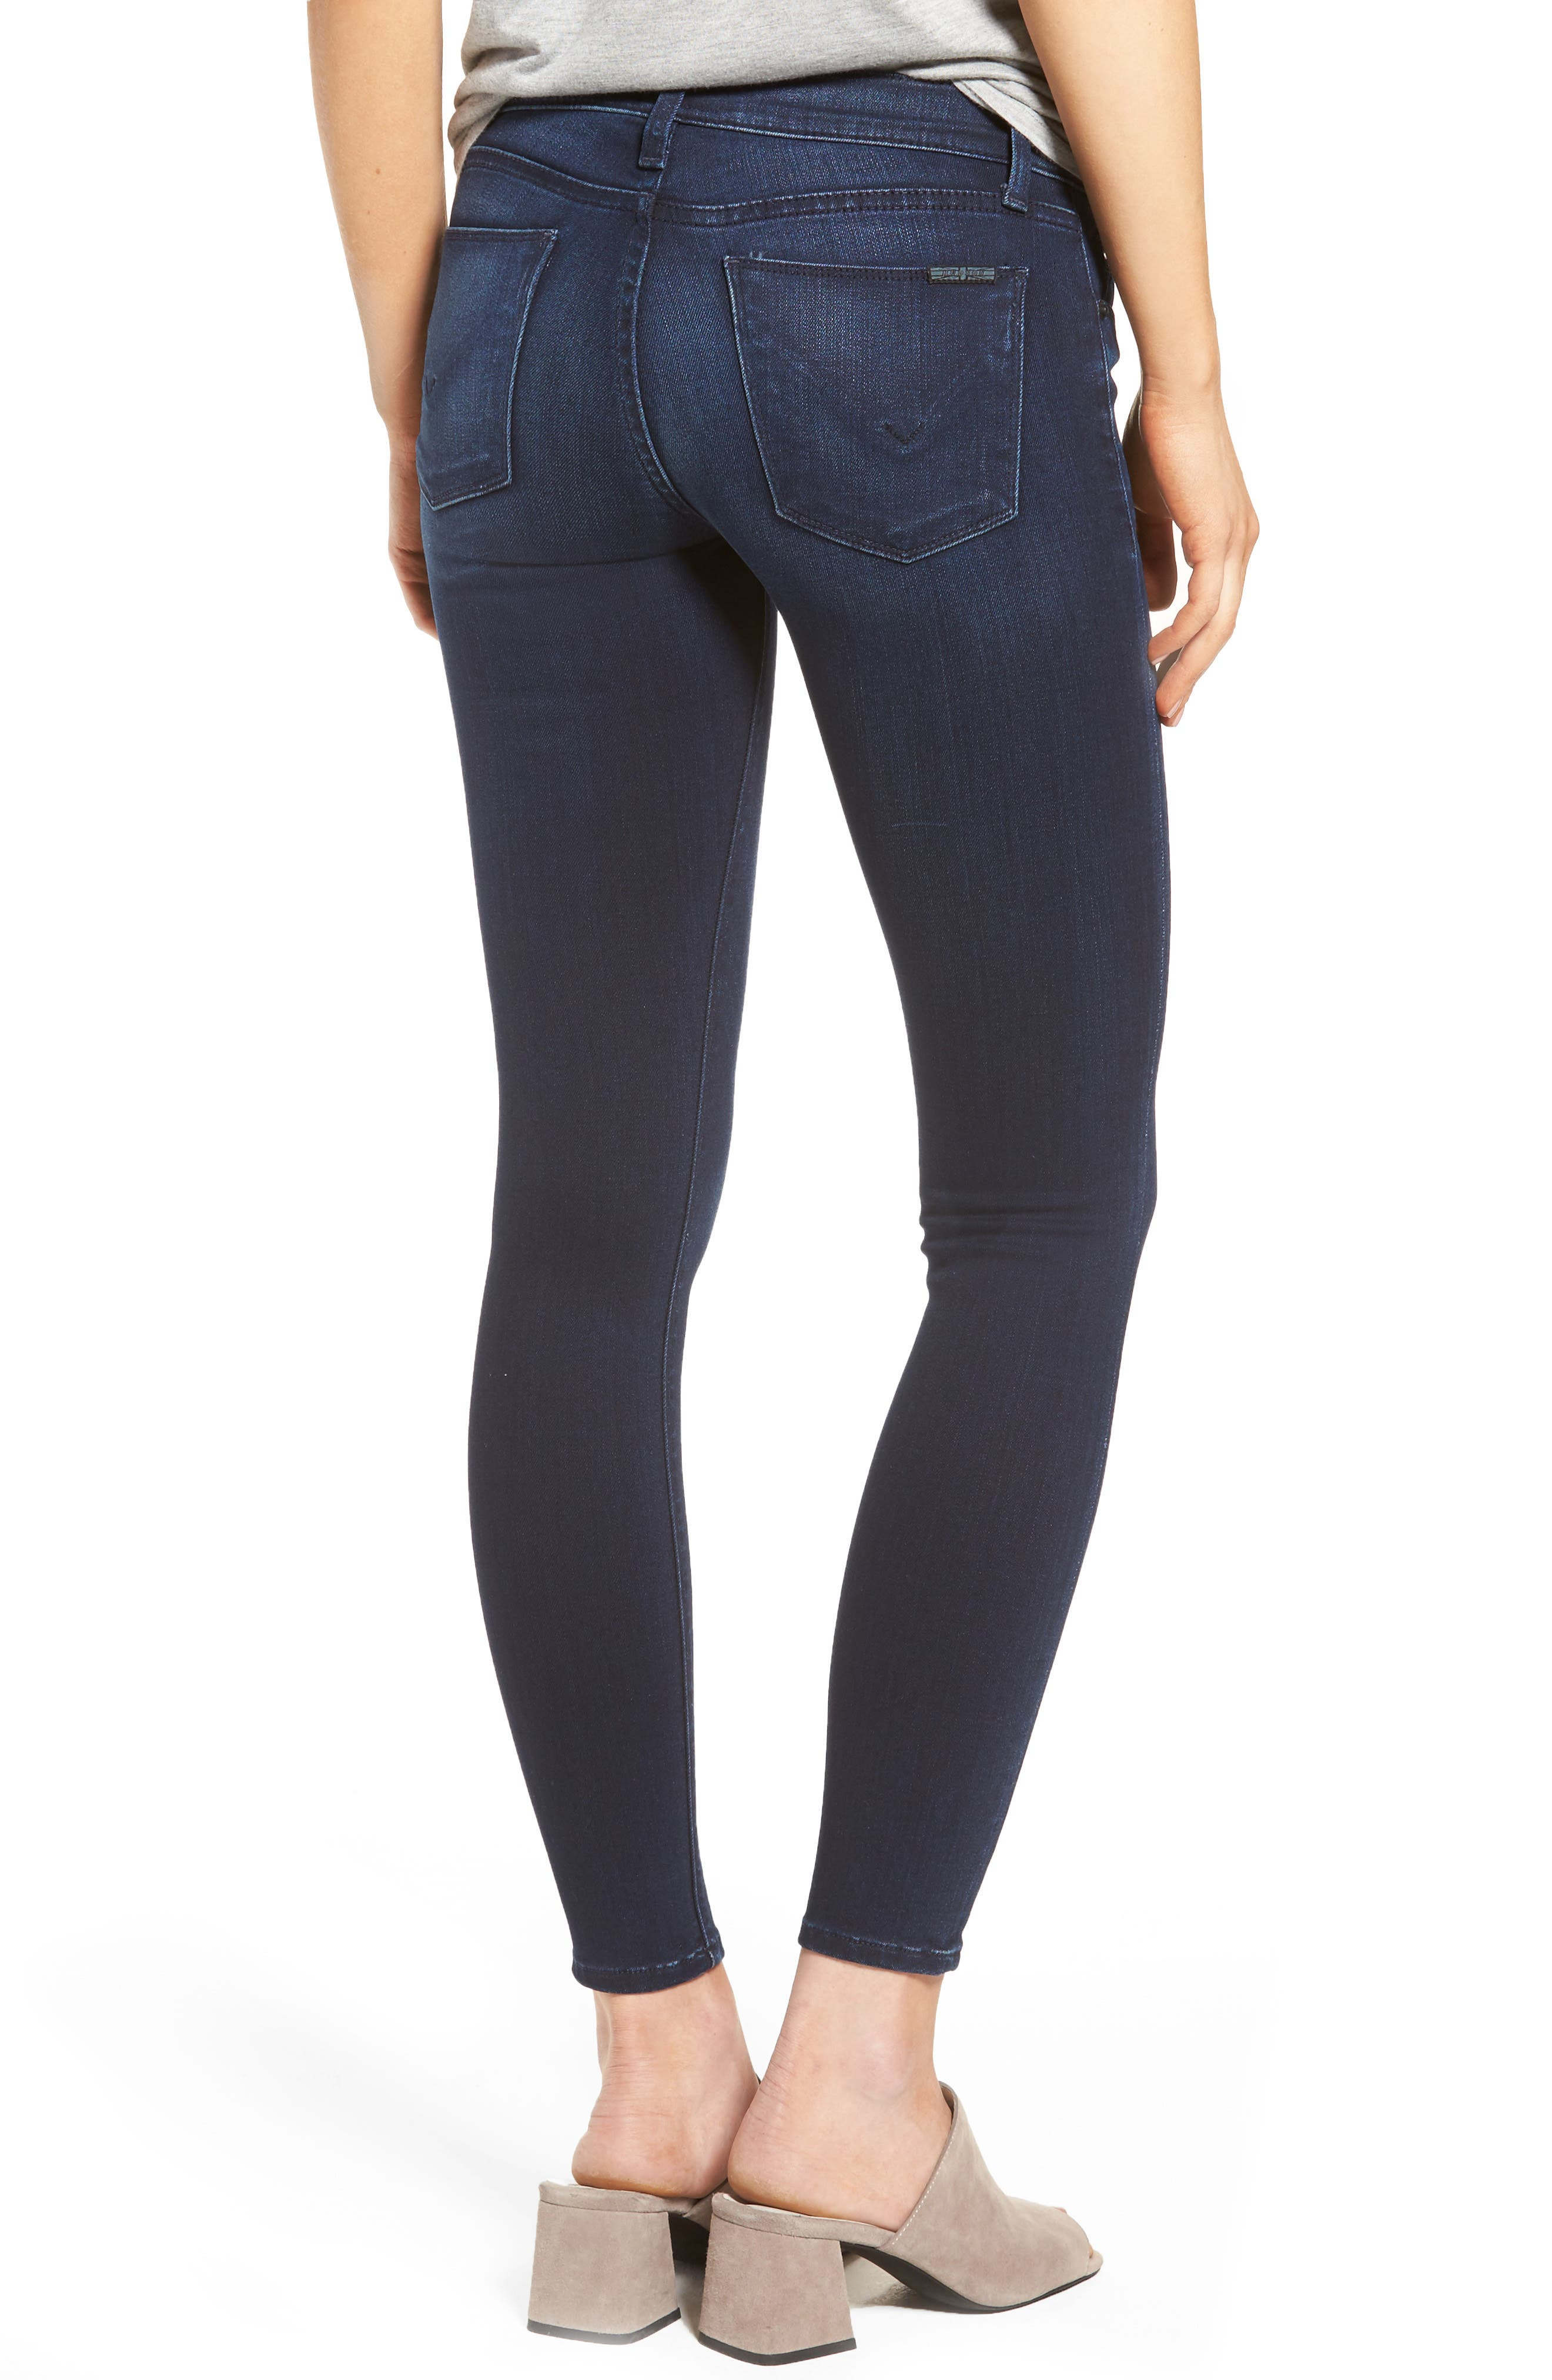 Krista Super Skinny Crop Jeans,                             Alternate thumbnail 2, color,                             401